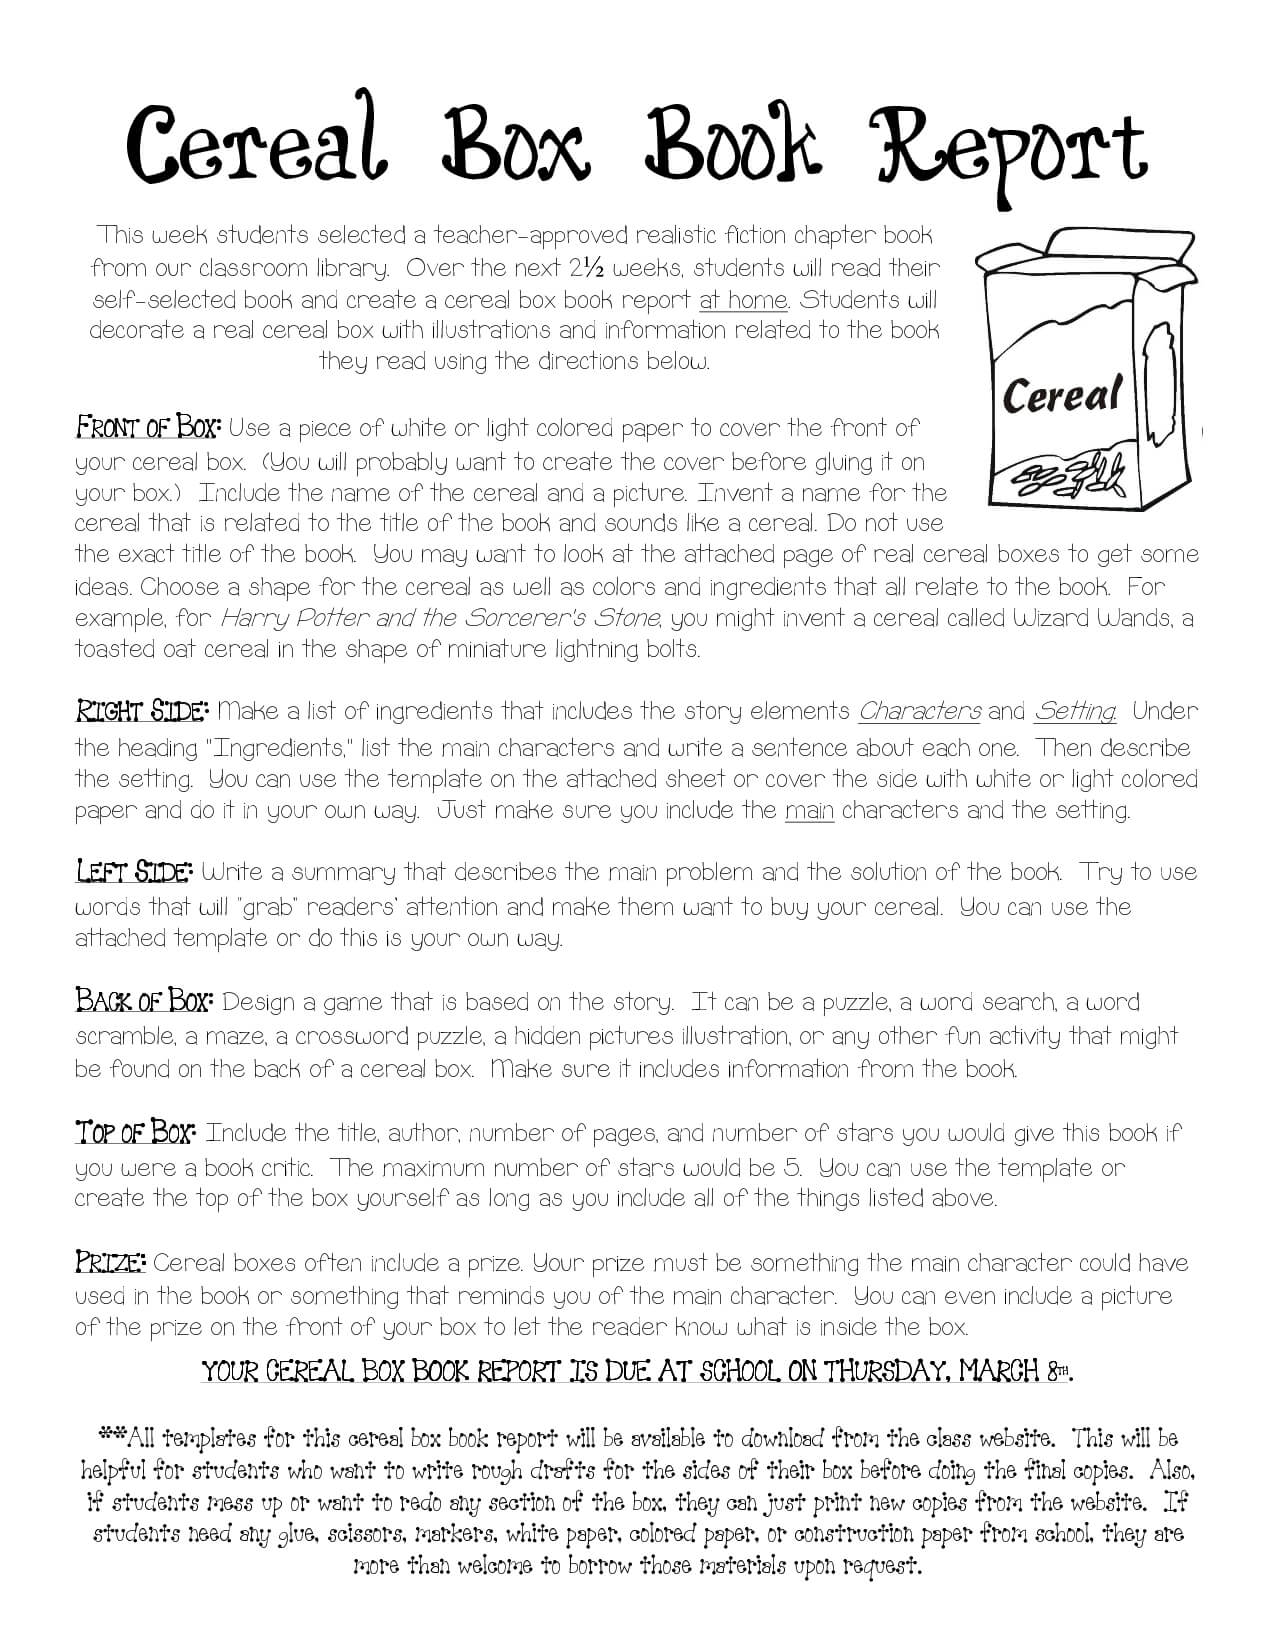 Cereal Box Book Report Instructions | Cereal Box Book Report With Regard To Cereal Box Book Report Template